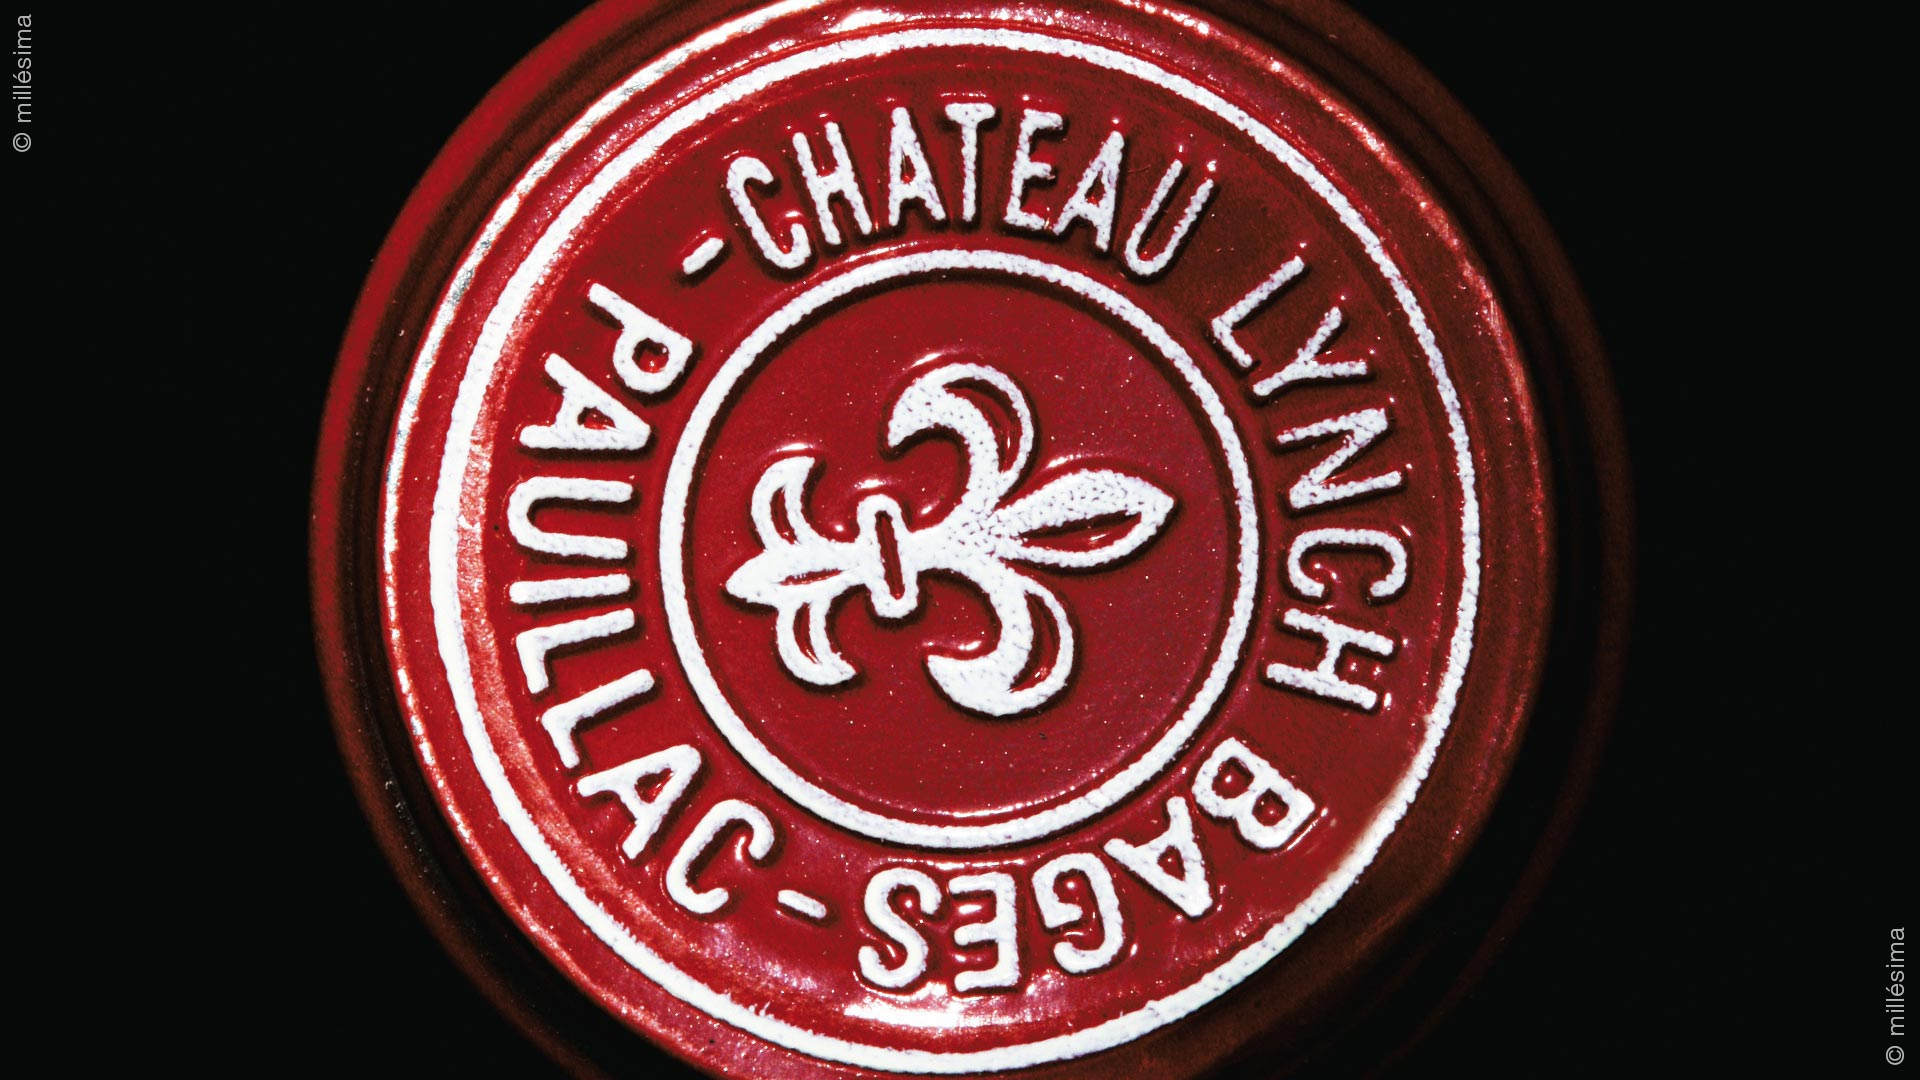 Chateau Lynch-Bages 2013 - 1